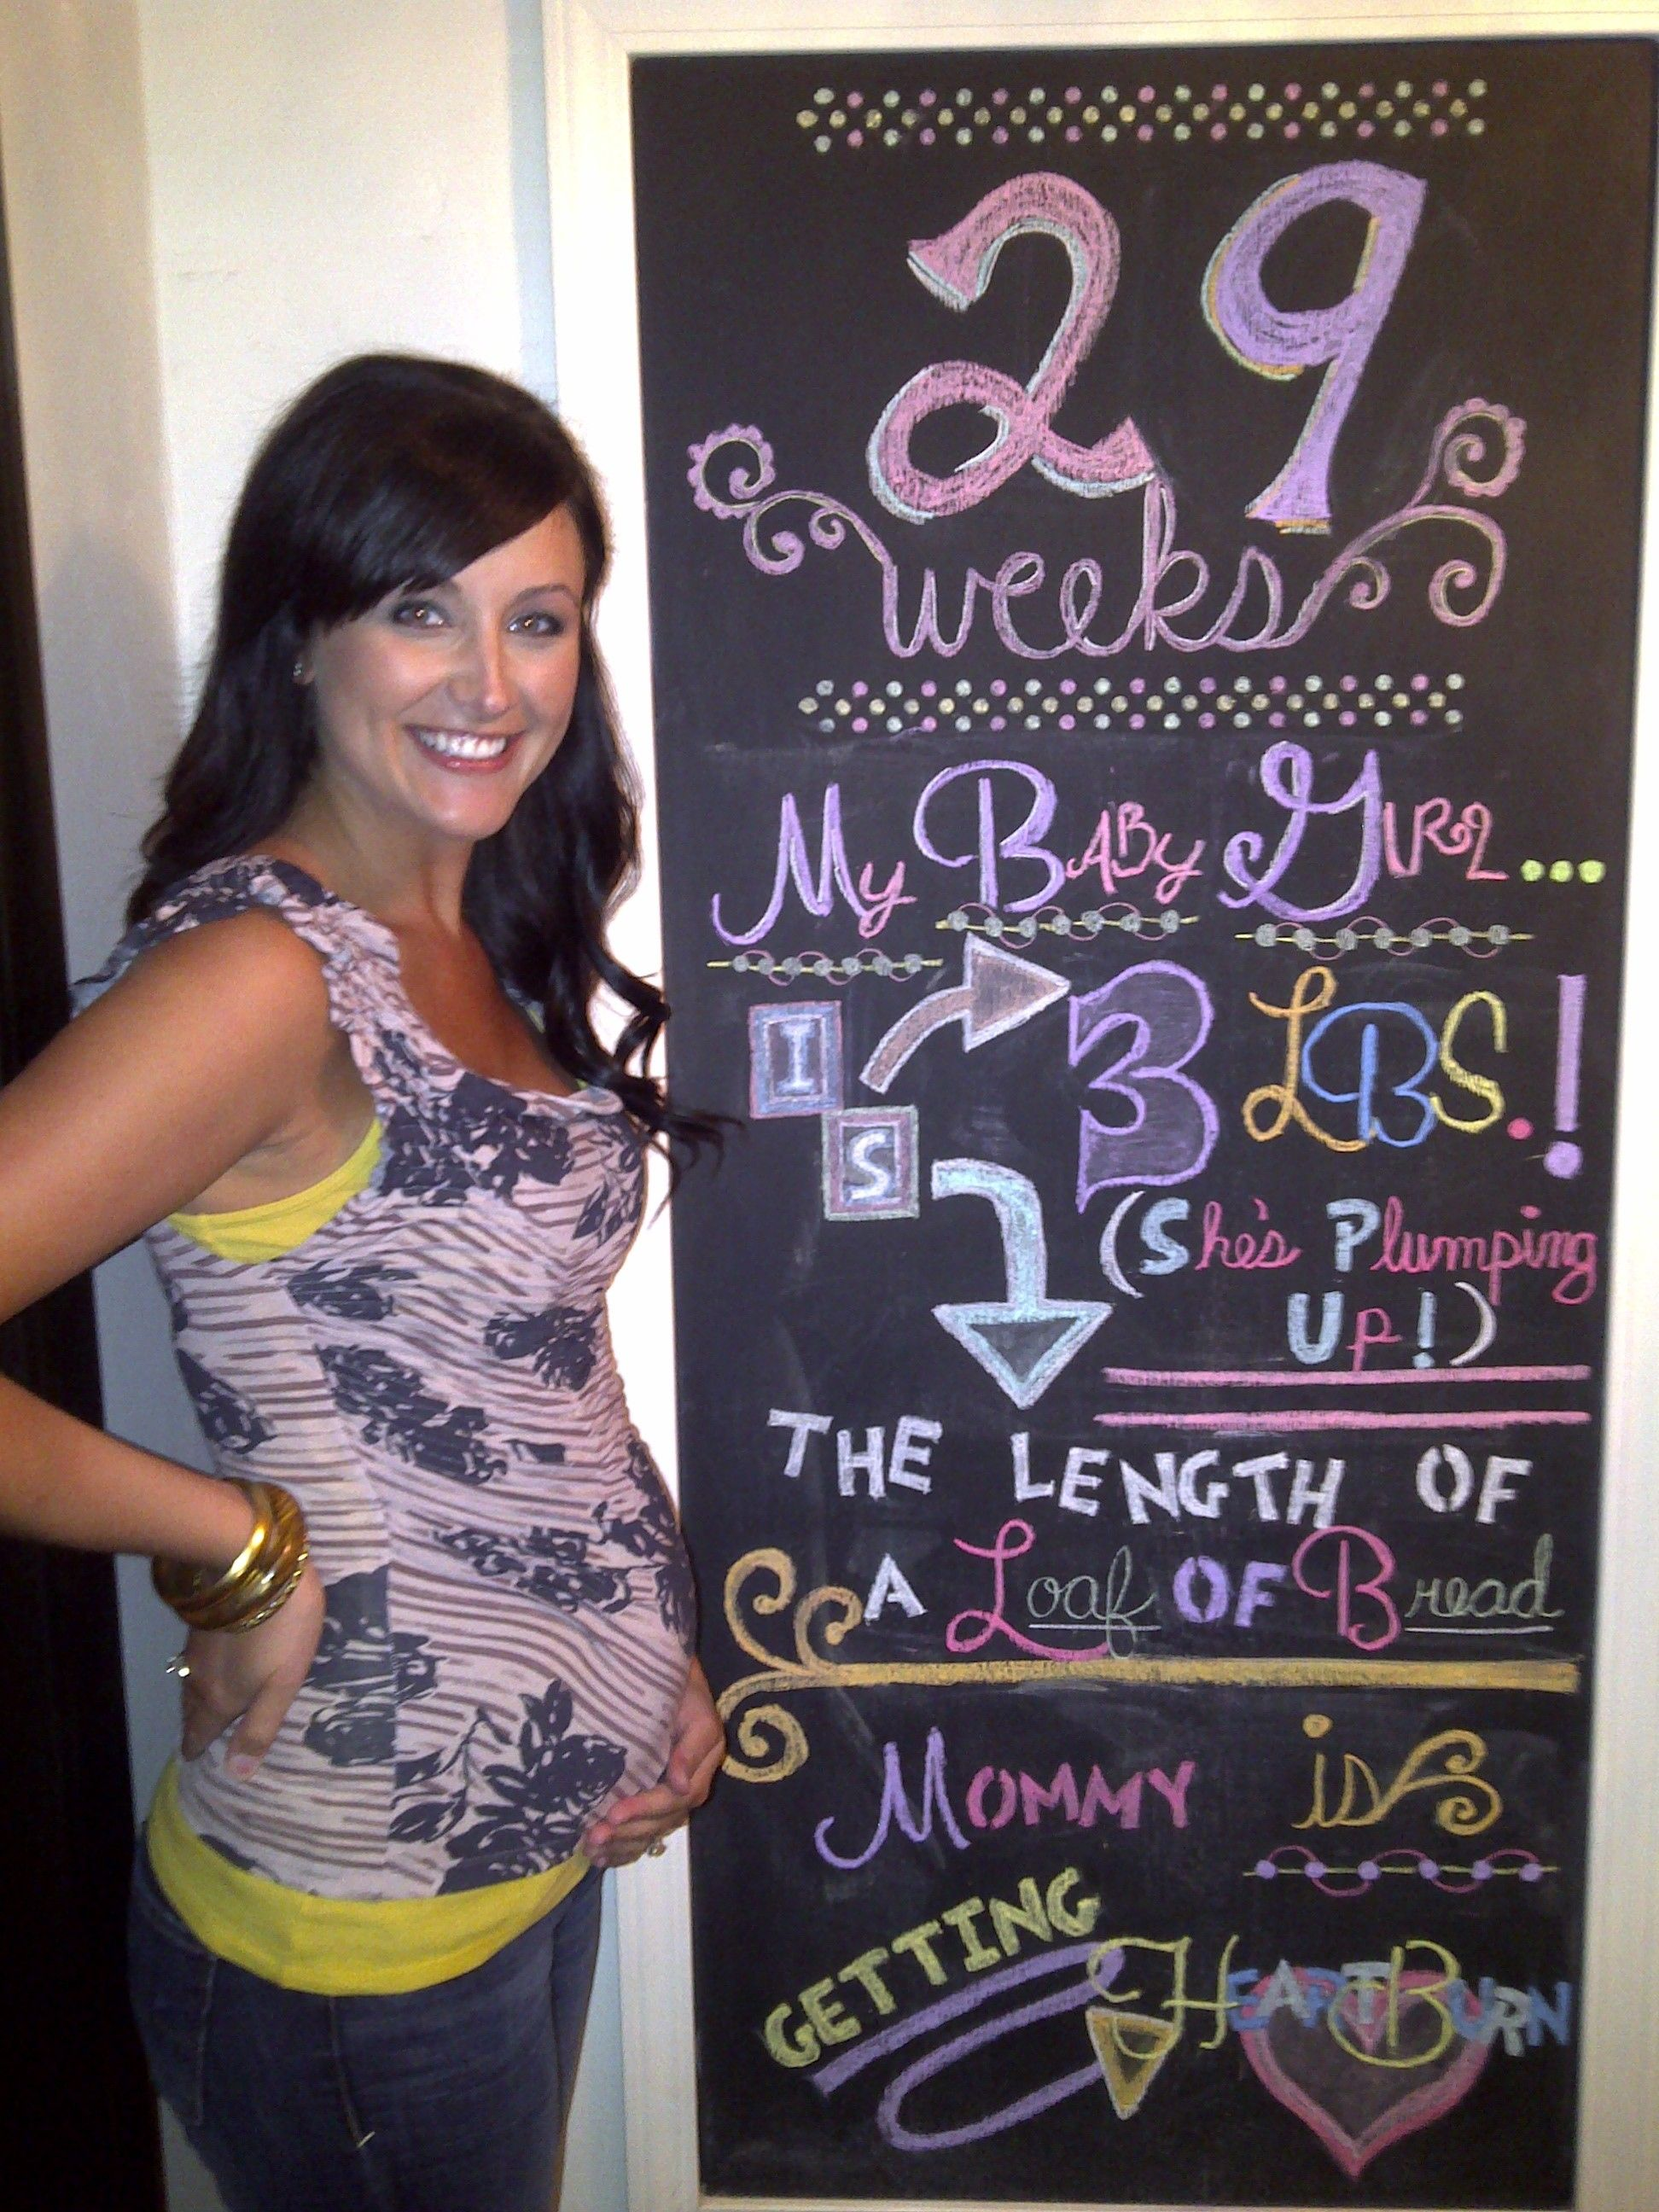 7 more weeks and she'll be considered full-term!   Baby ...